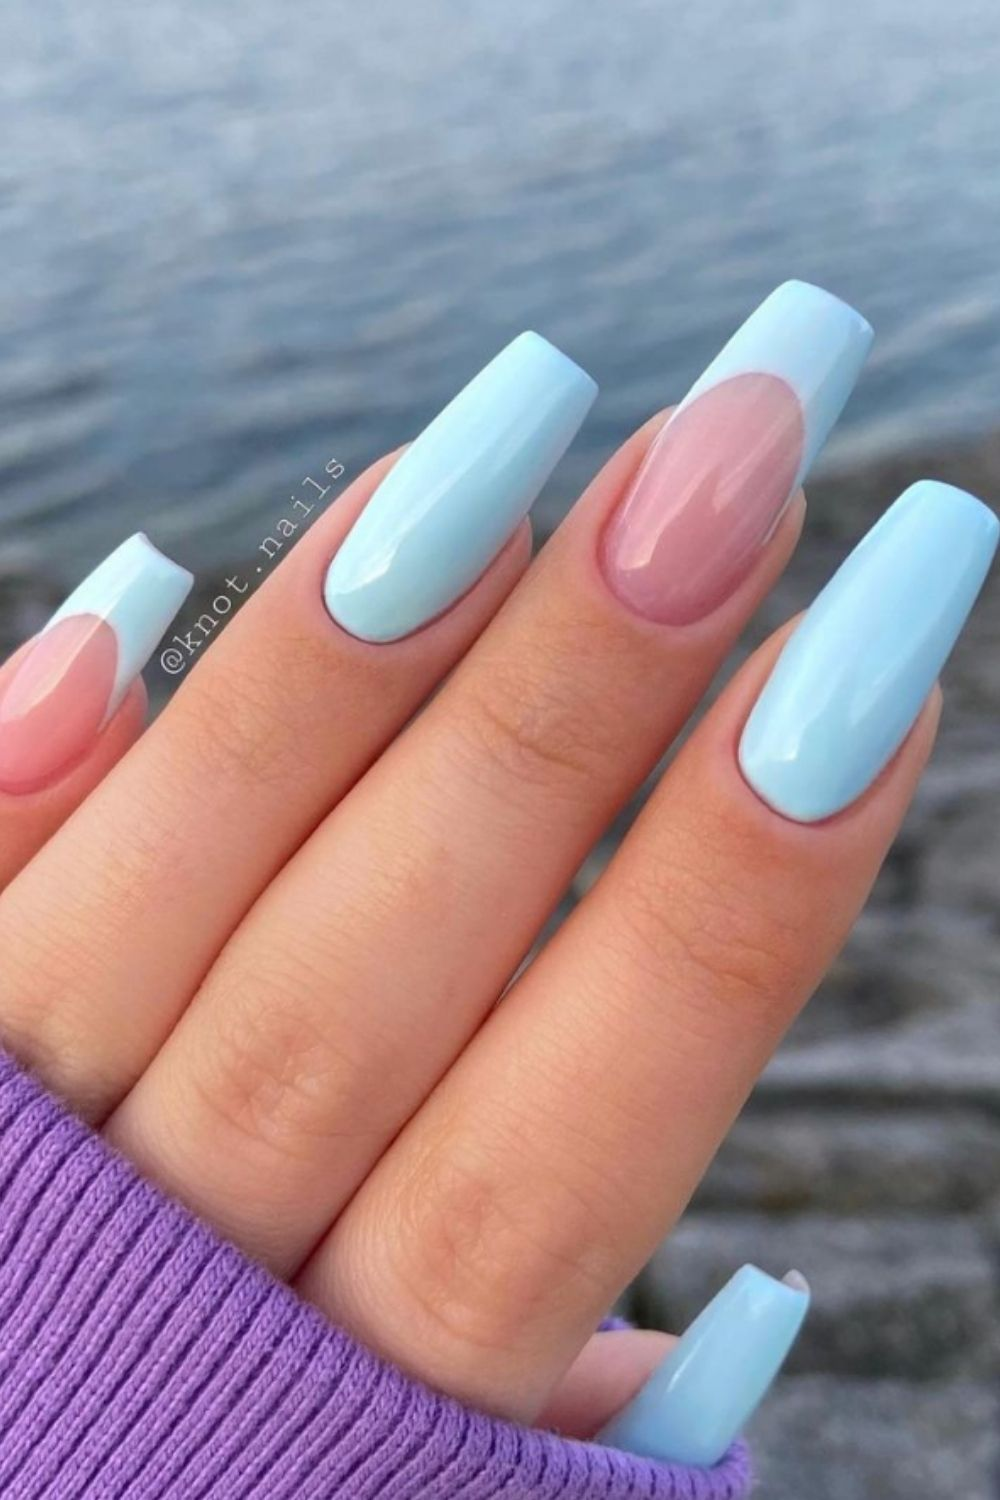 Light blue nails   Who knew nail colors could be so deep?